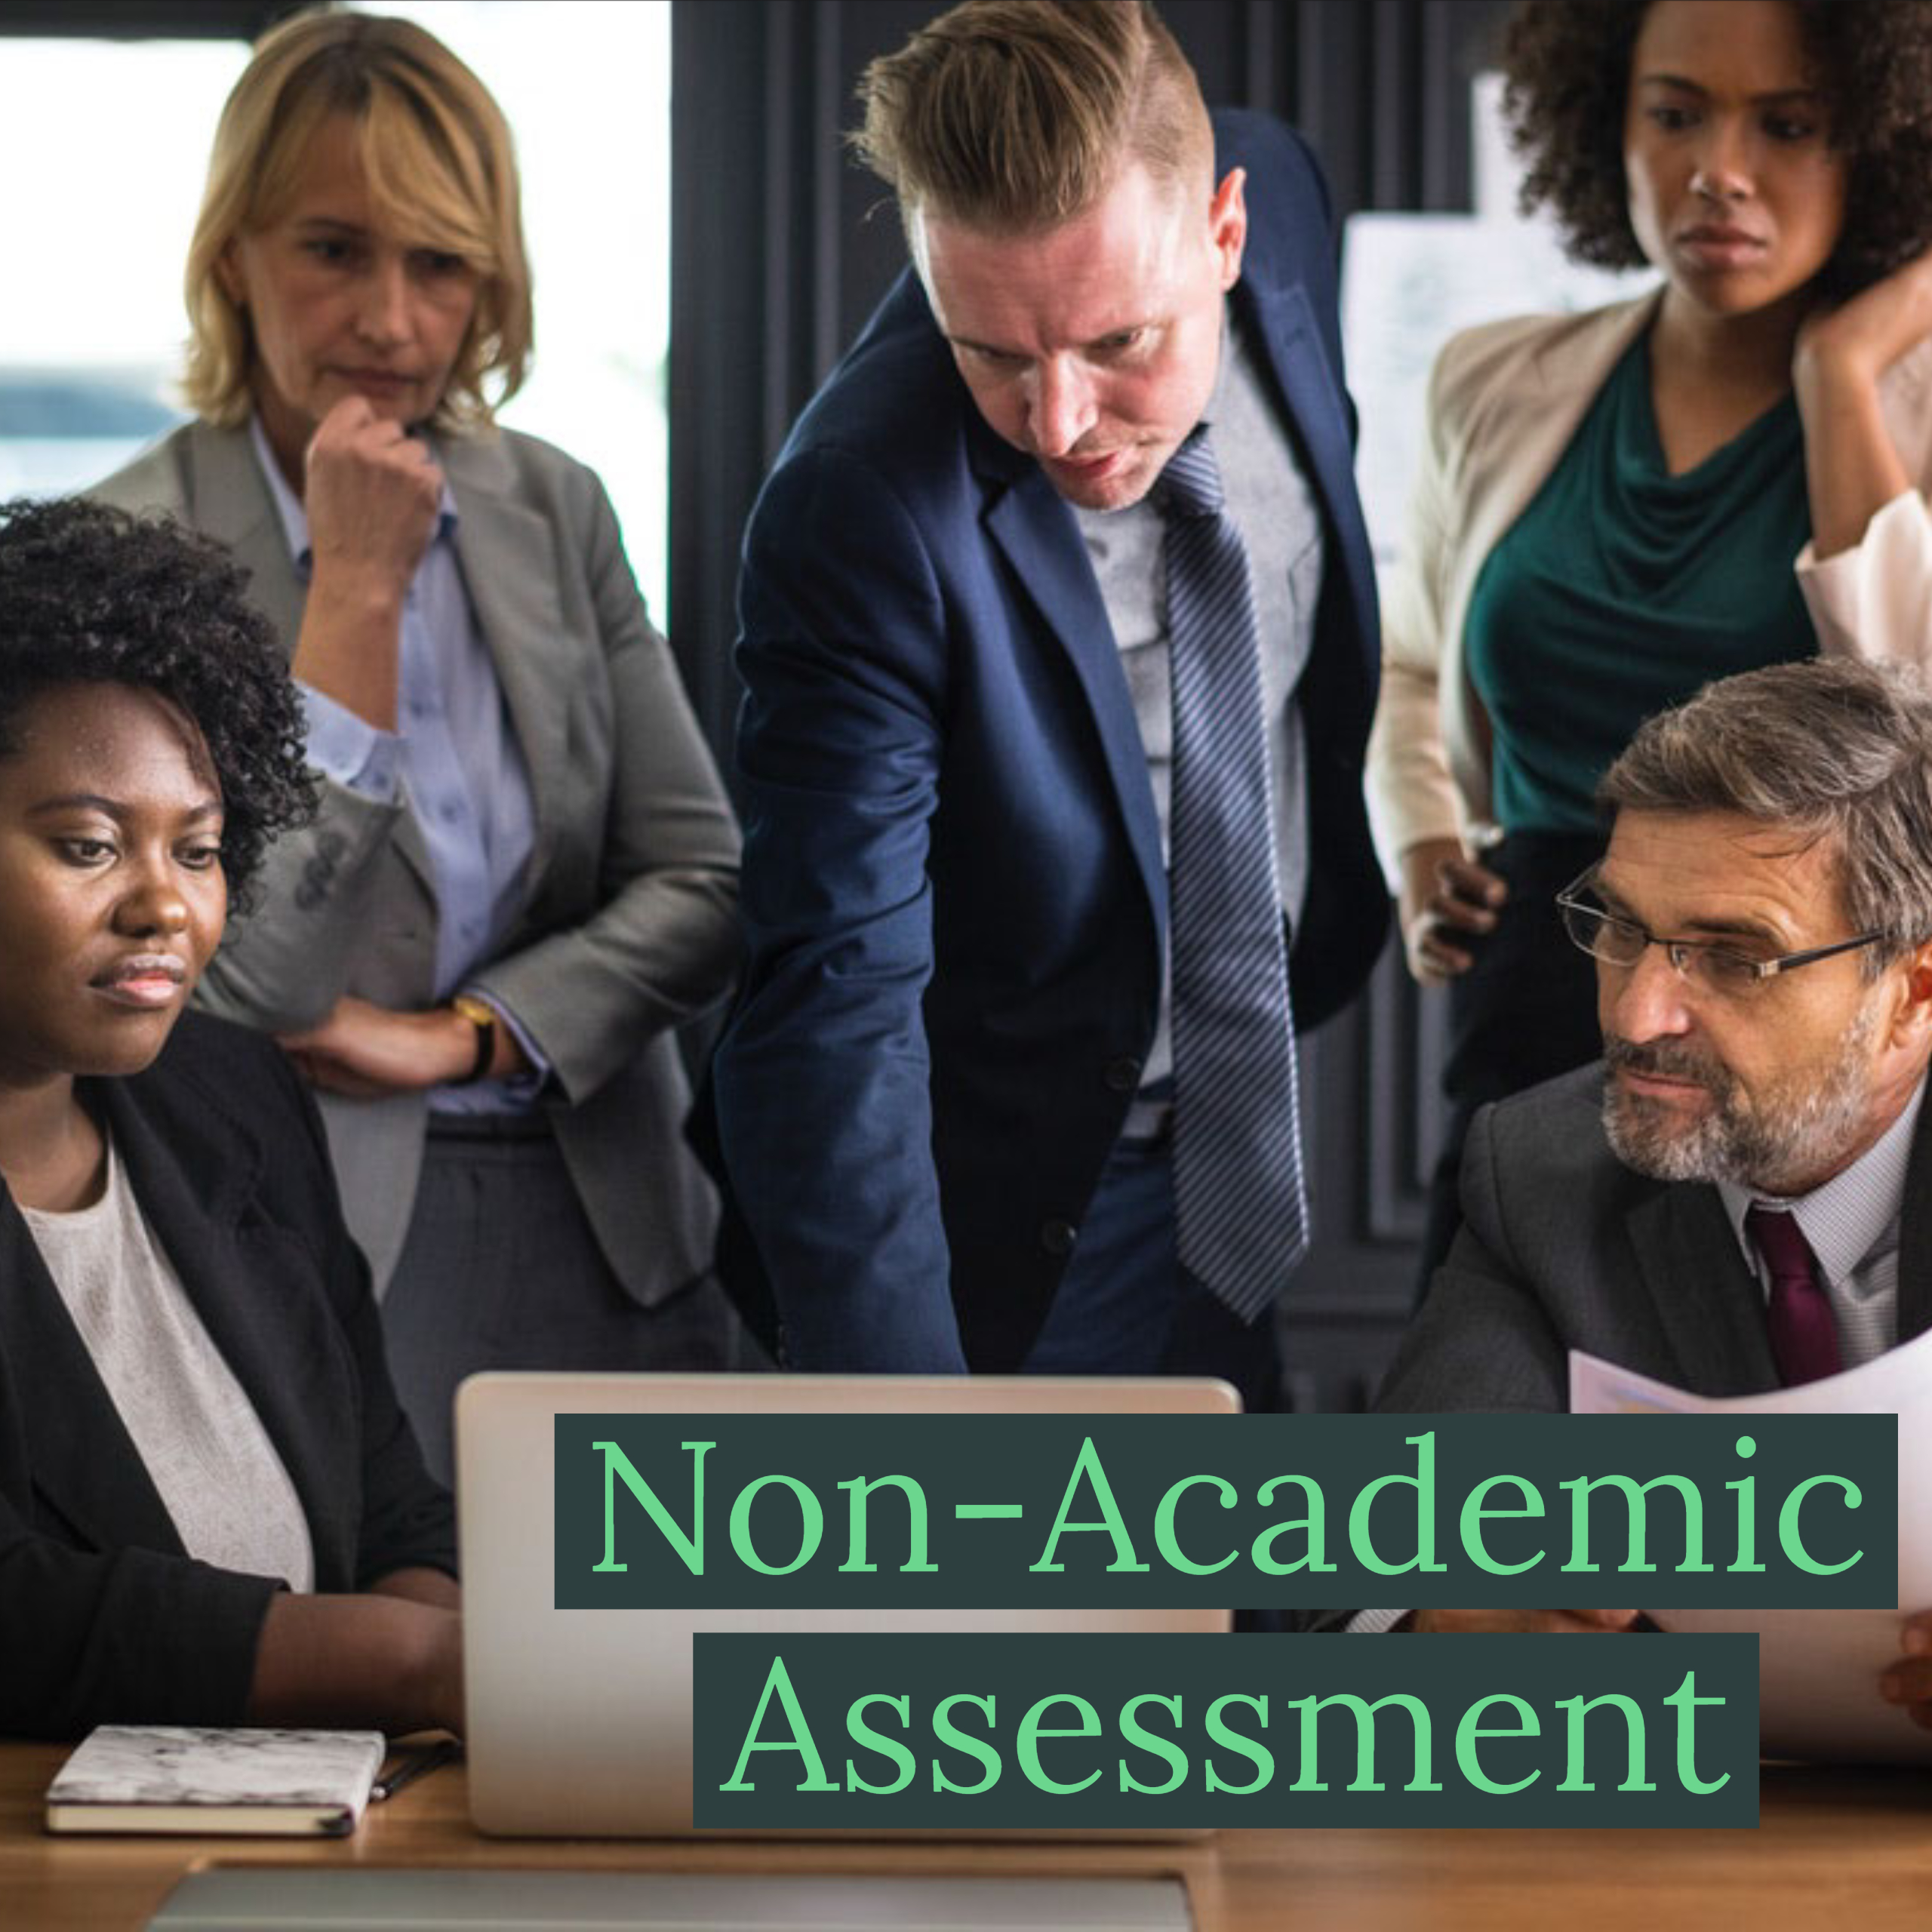 Non-Academic Assessment